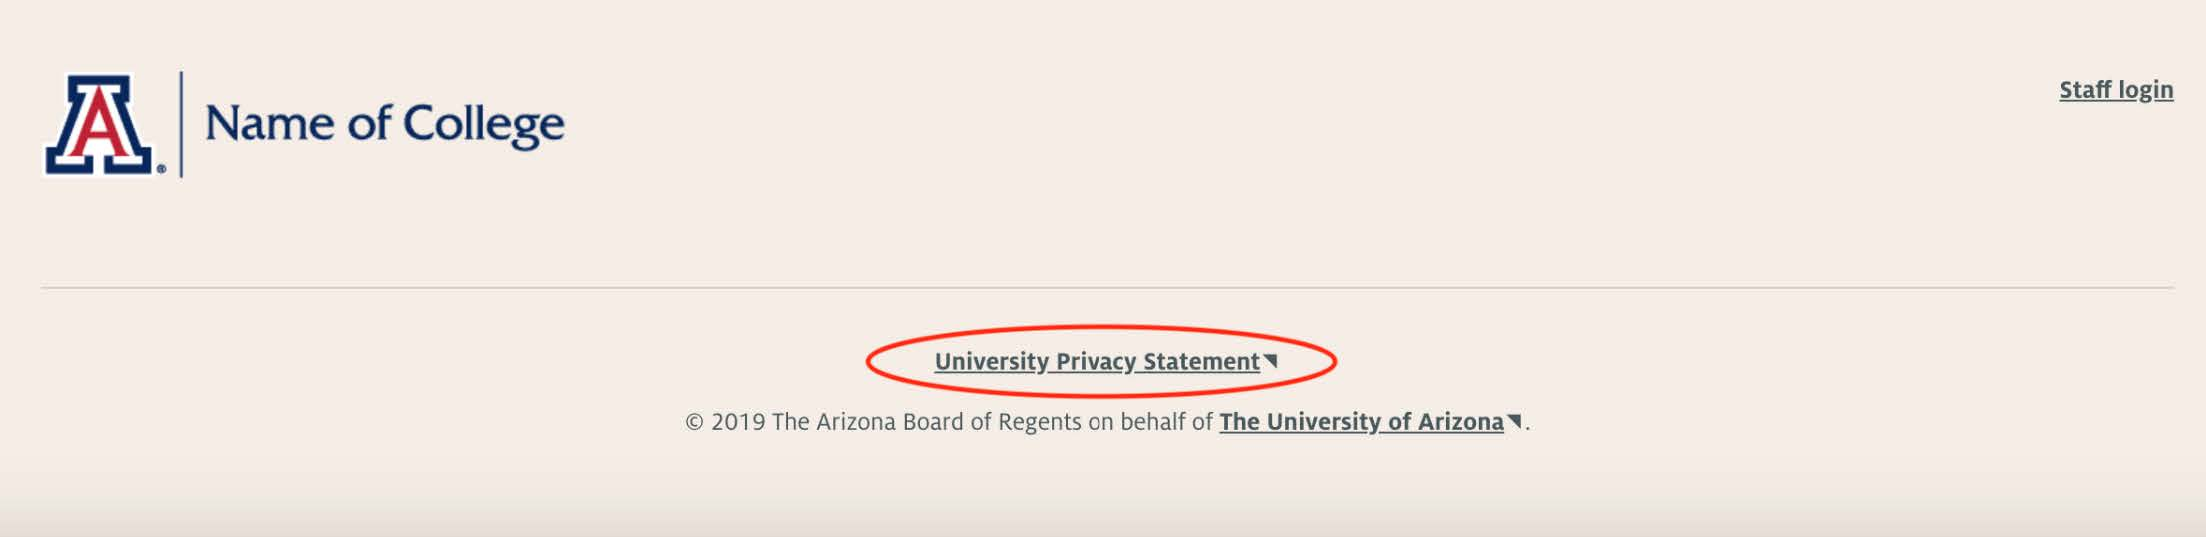 UA Privacy Policy Website Footer